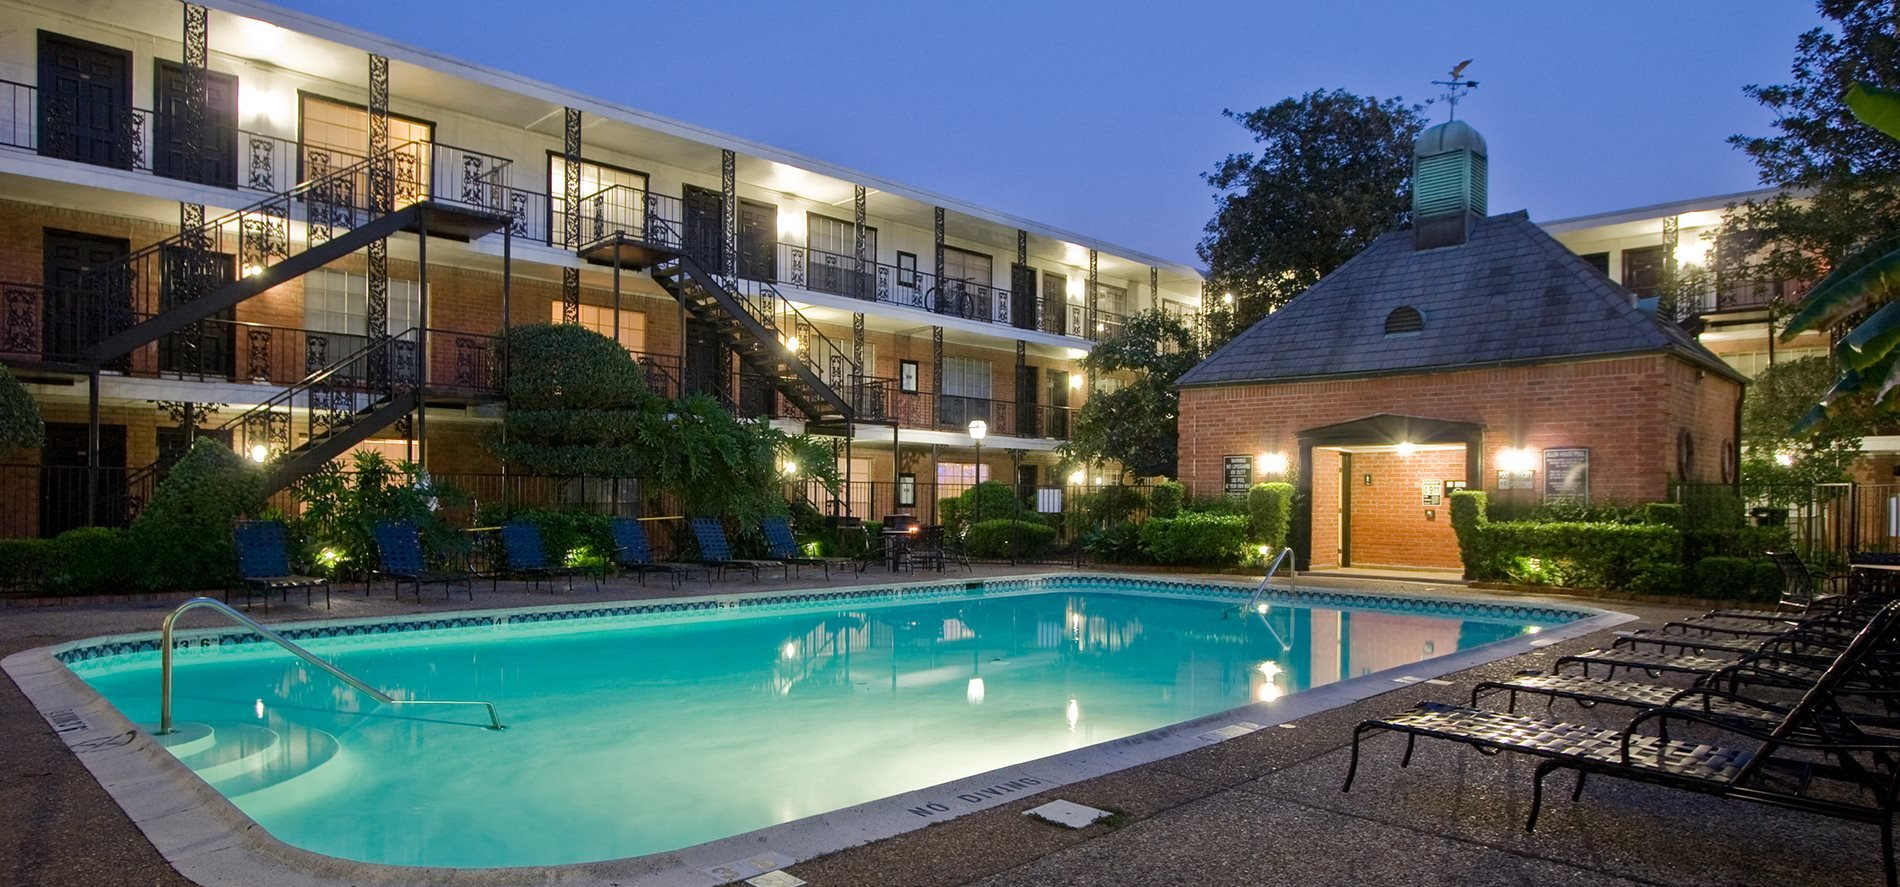 River oaks apartments houston allen house apartments for Garden oaks pool houston